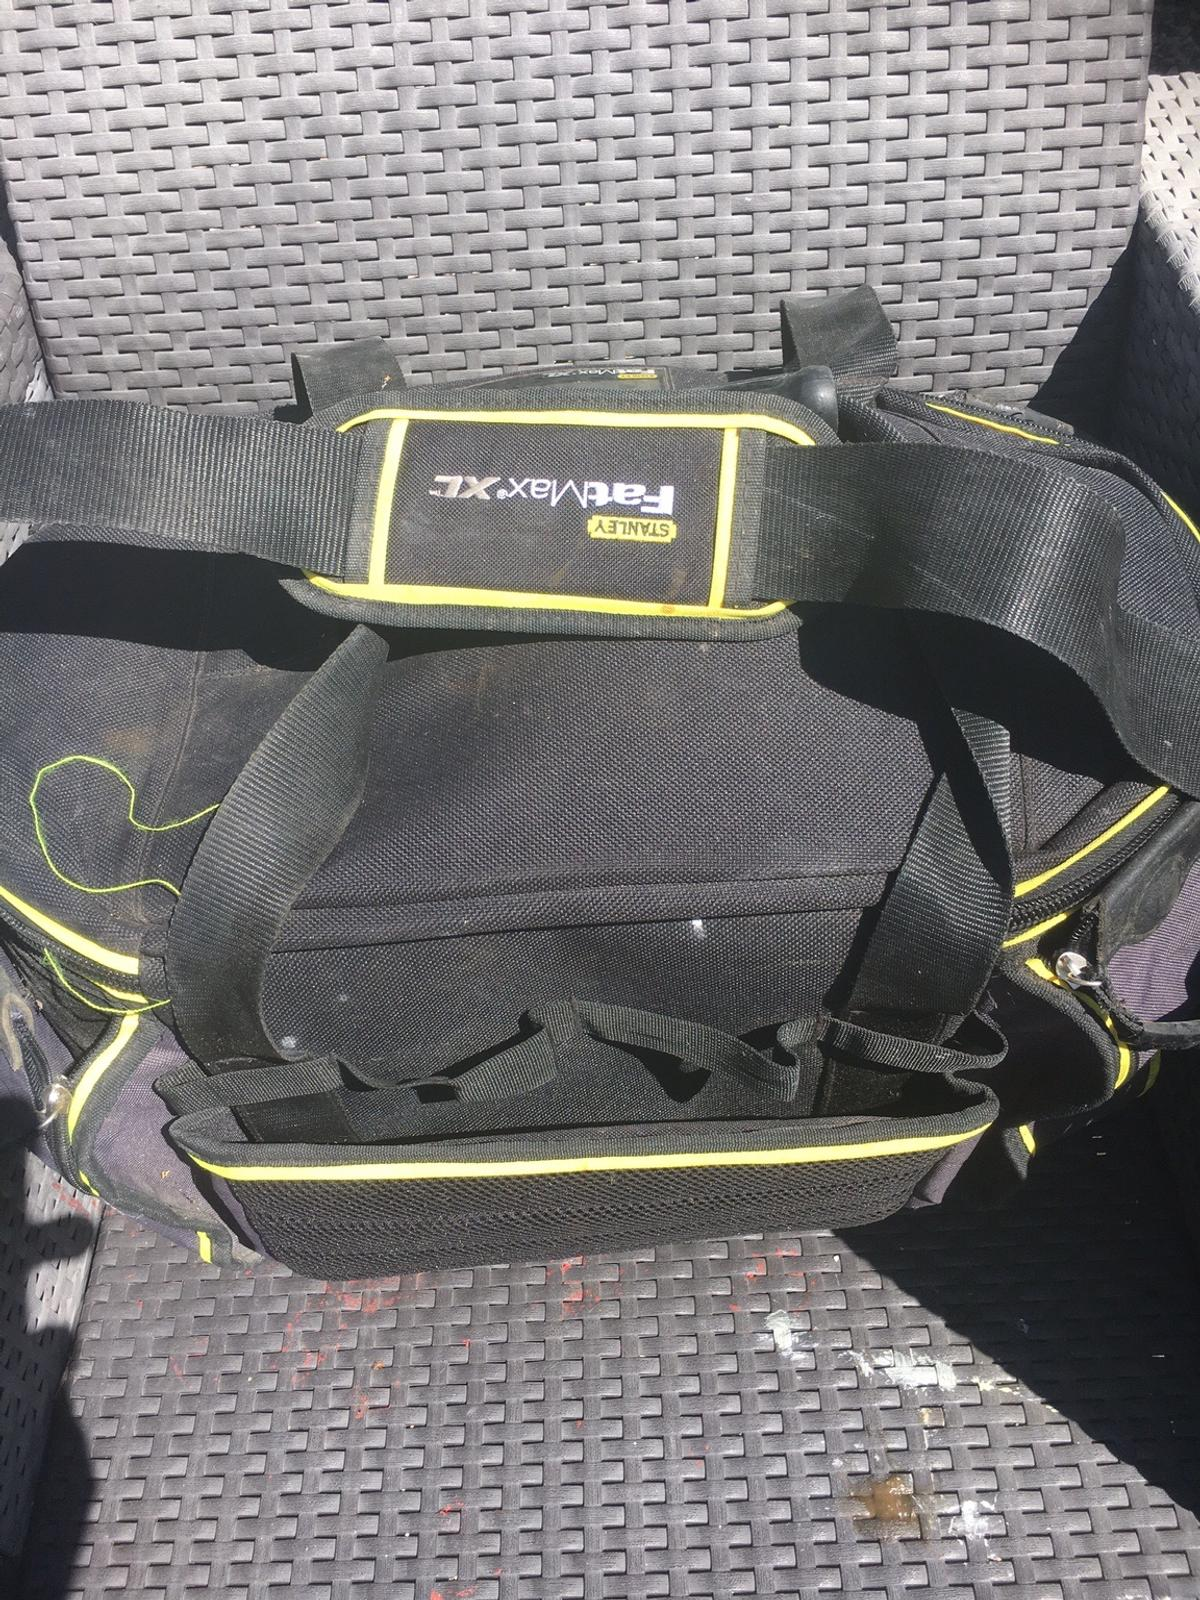 New Fat max tool bag for sale ideal for builder